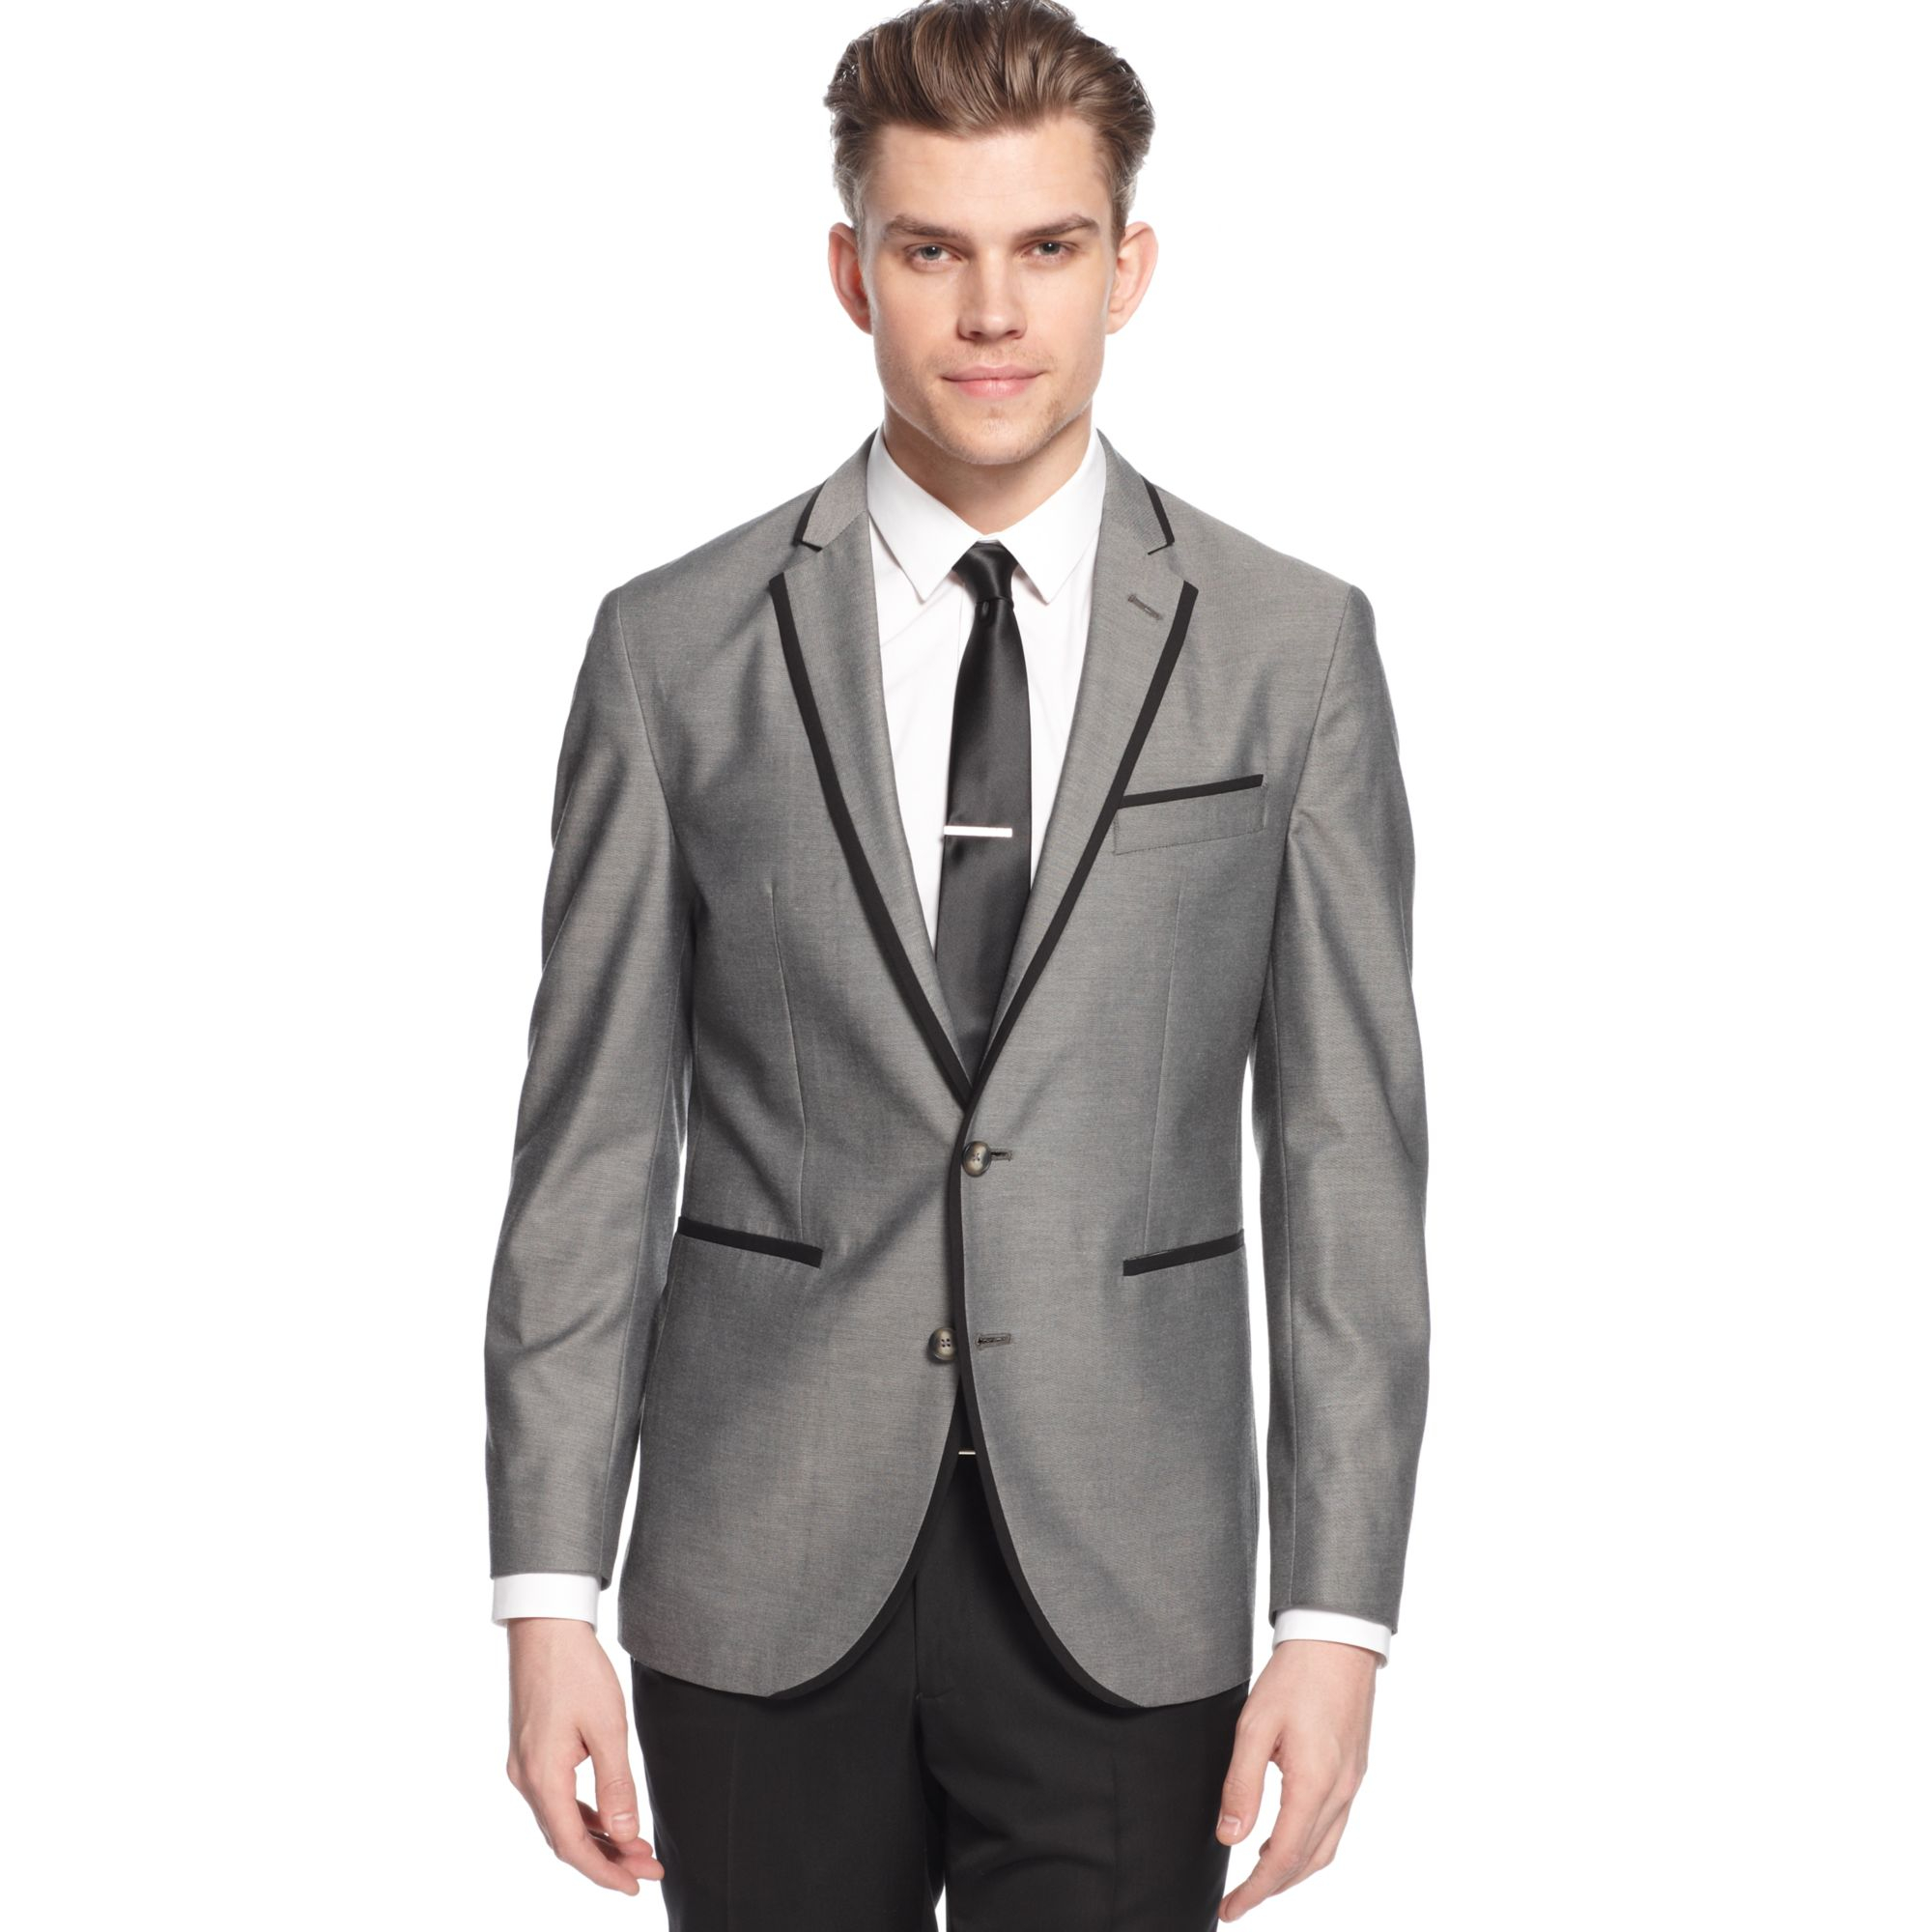 Kenneth cole reaction Sport Coat Grey Solid with Black Lapel and